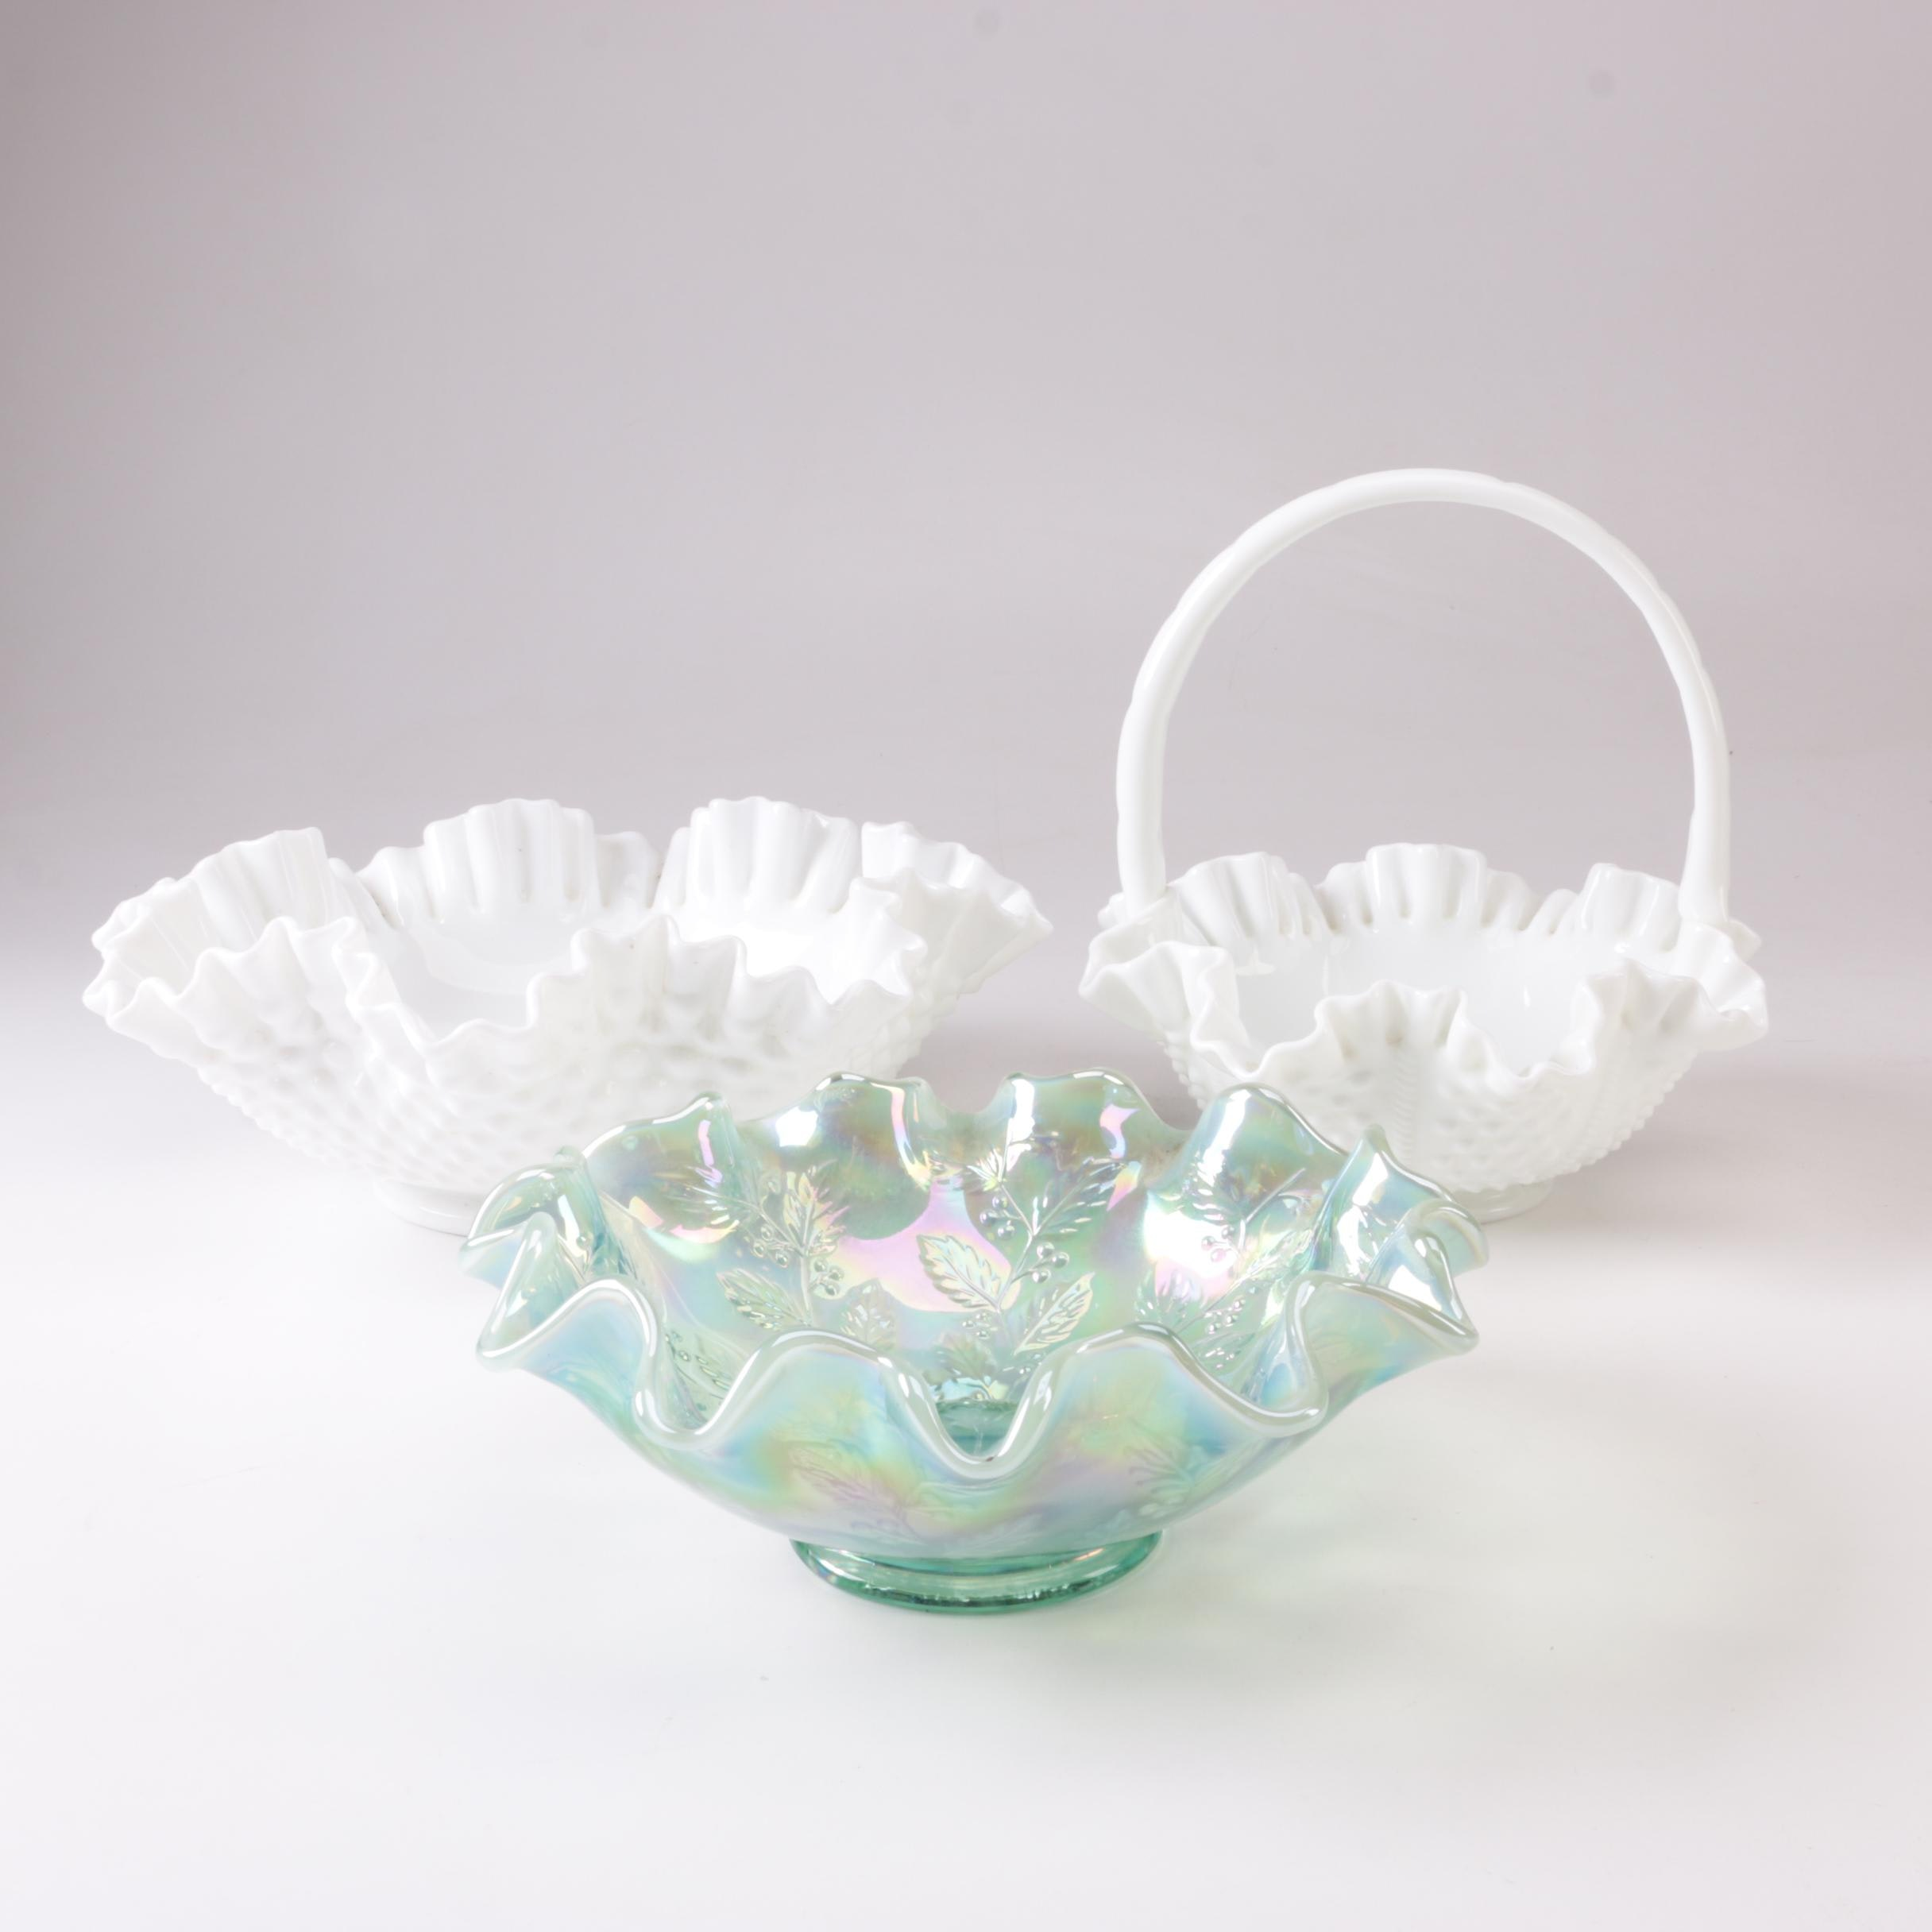 Vintage Fenton Ruffled Bowls and Baskets Including Hobnail Milkglass